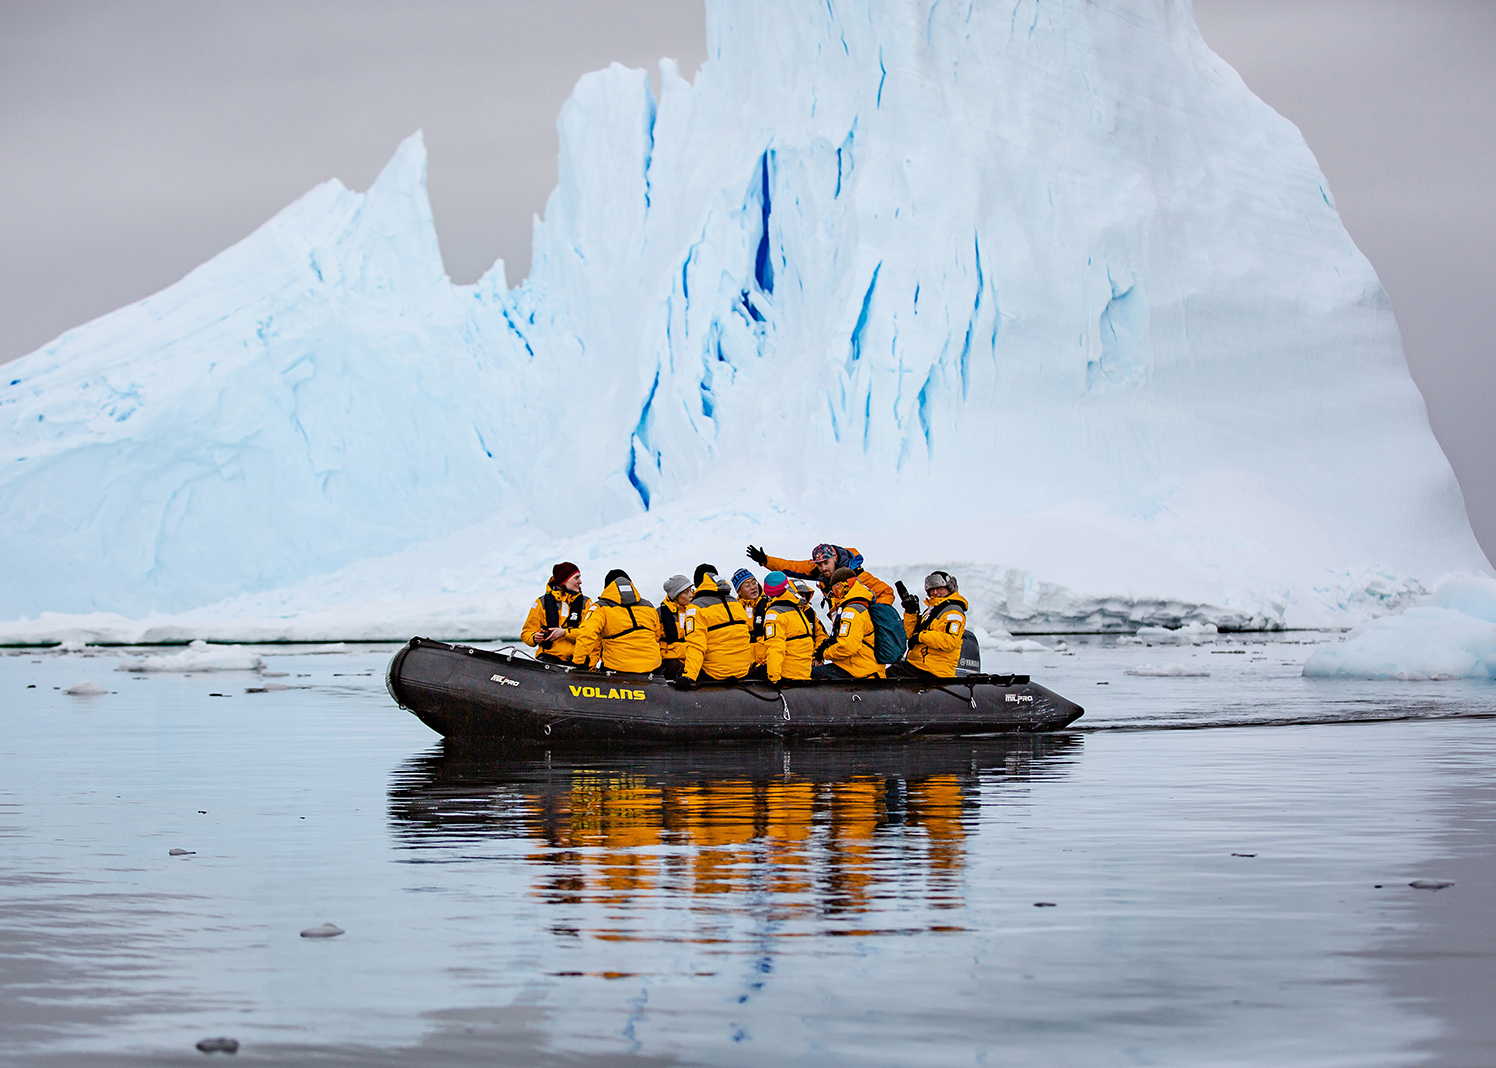 Guests of Quark Expeditions enjoy a close-up view (within a safe distance) of an iceberg while on a Zodiac cruise. Such ice formations can be seen in various parts of Iceland and Greenland.